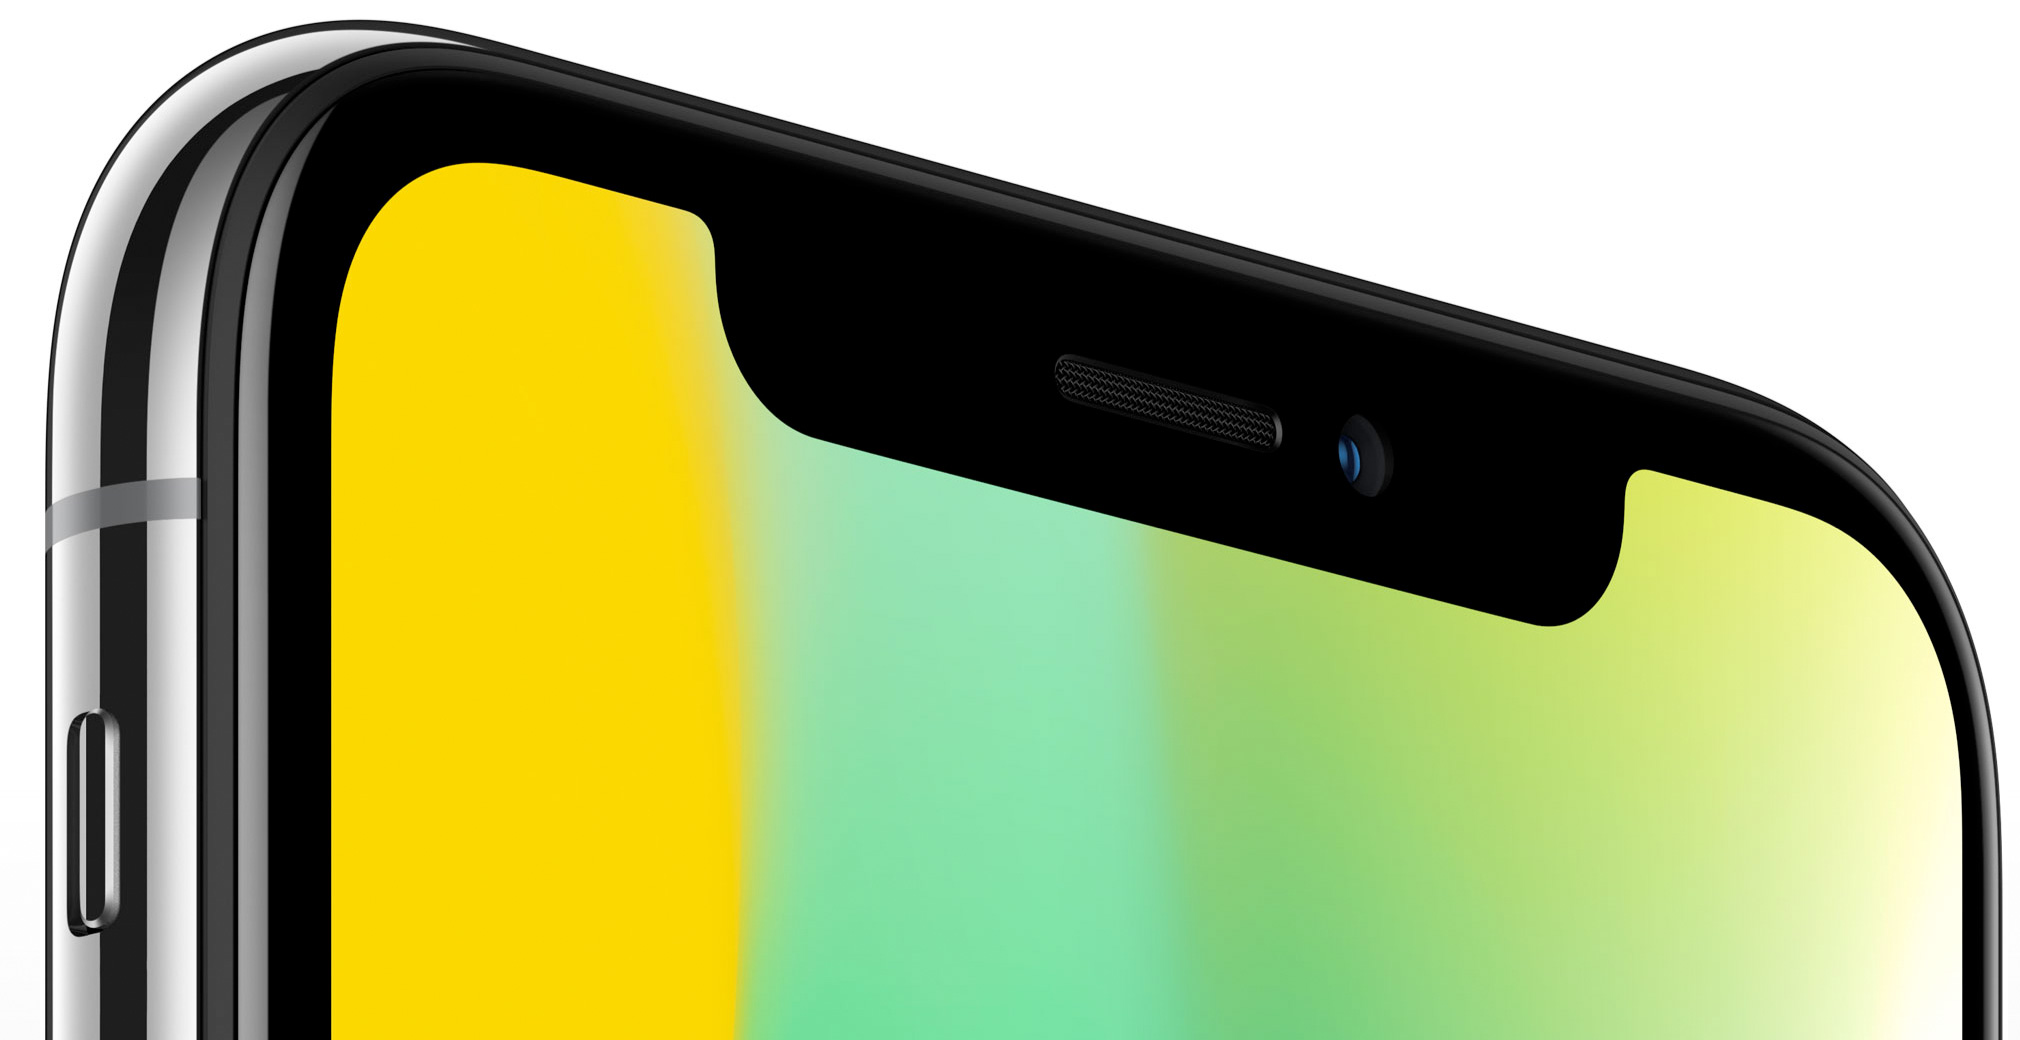 IPhone X Noticia Xiaomi